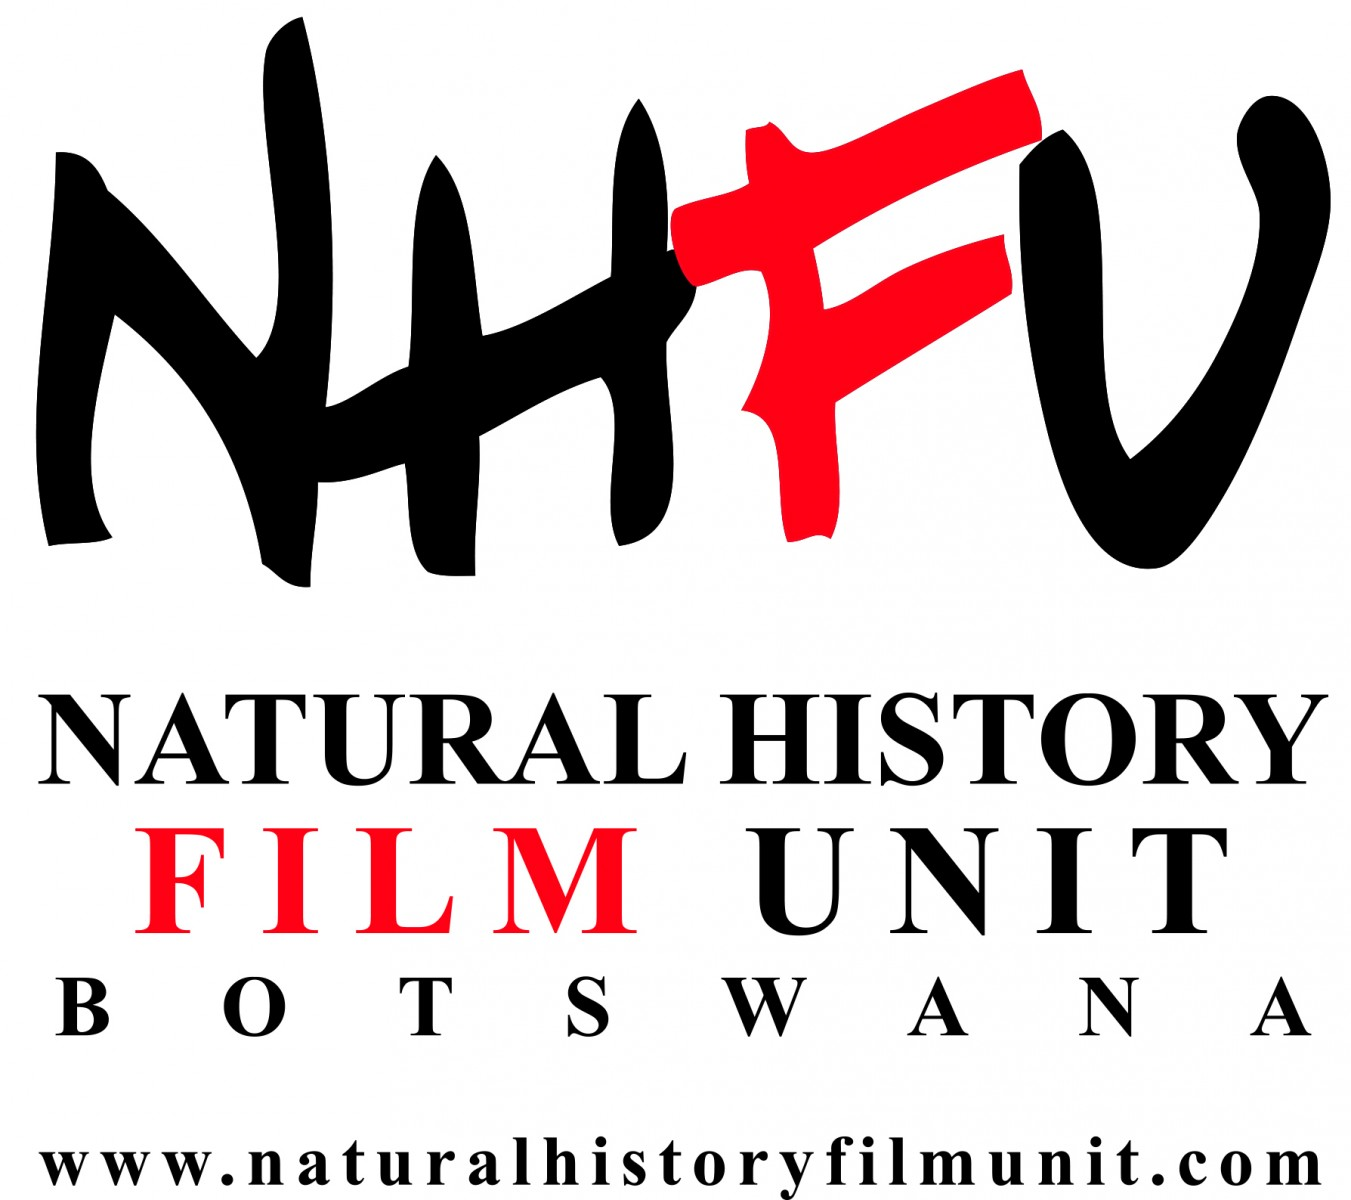 Natural History Film Unit Botswana Logo for Africa's Giant Killers production